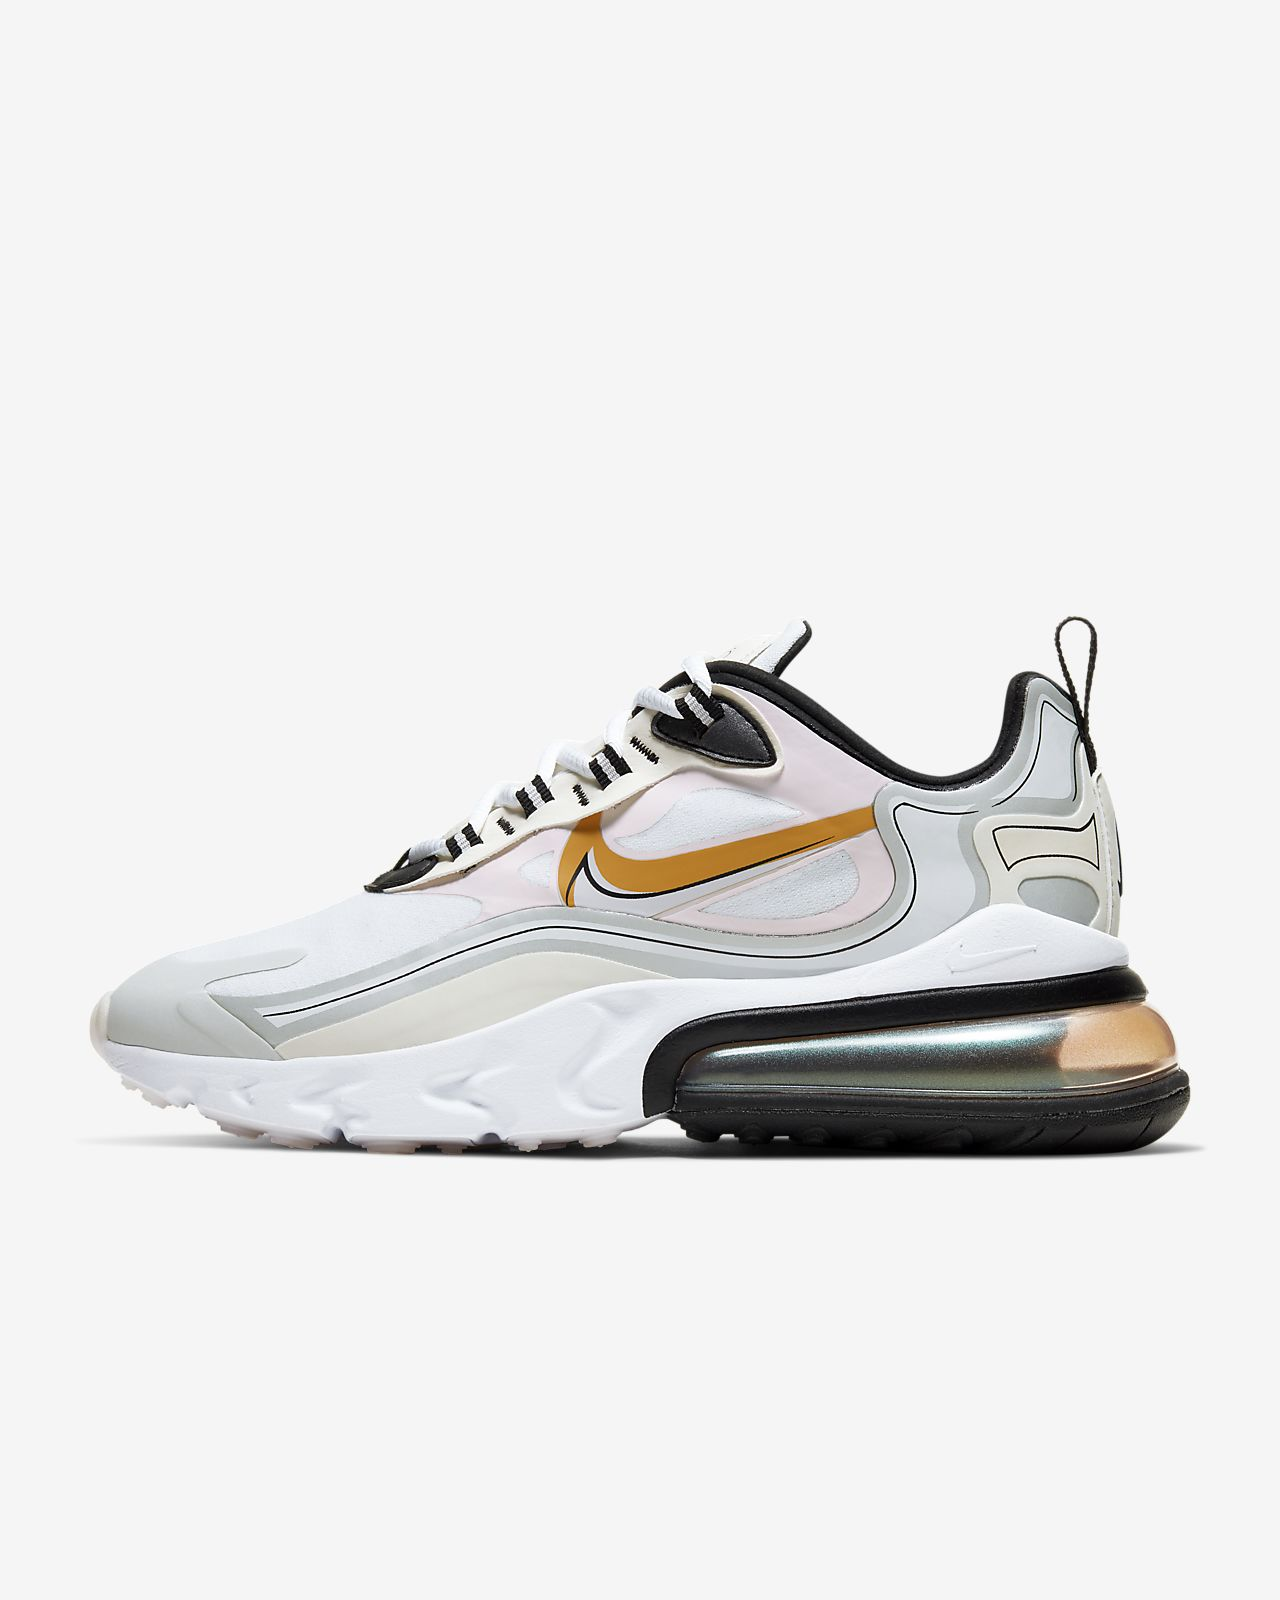 Nike Air Max 270 React LX Damenschuh